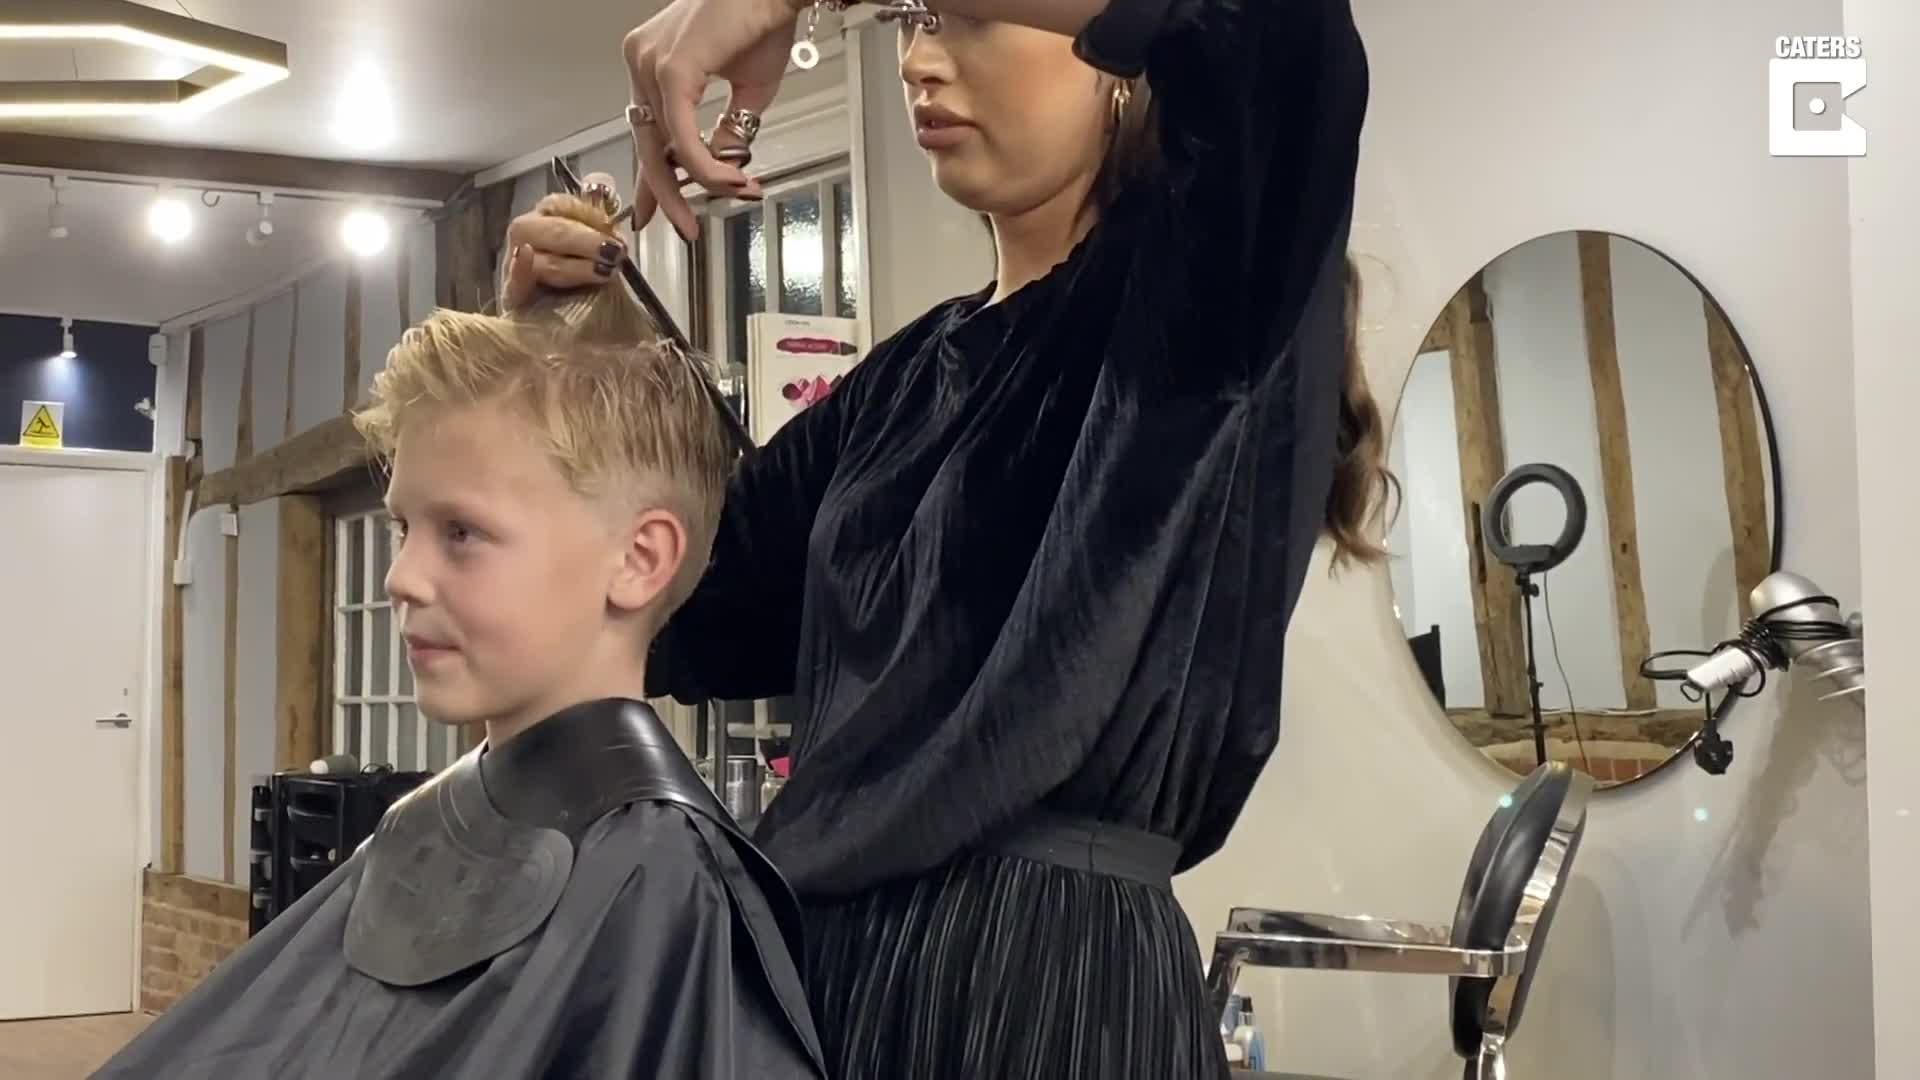 SCHOOLBOY TEASED FOR LONG LOCKS UNVEILS 18 MONTH SECRET AFTER PLEDGING TO HELP WIG CHARITY LAST YEAR